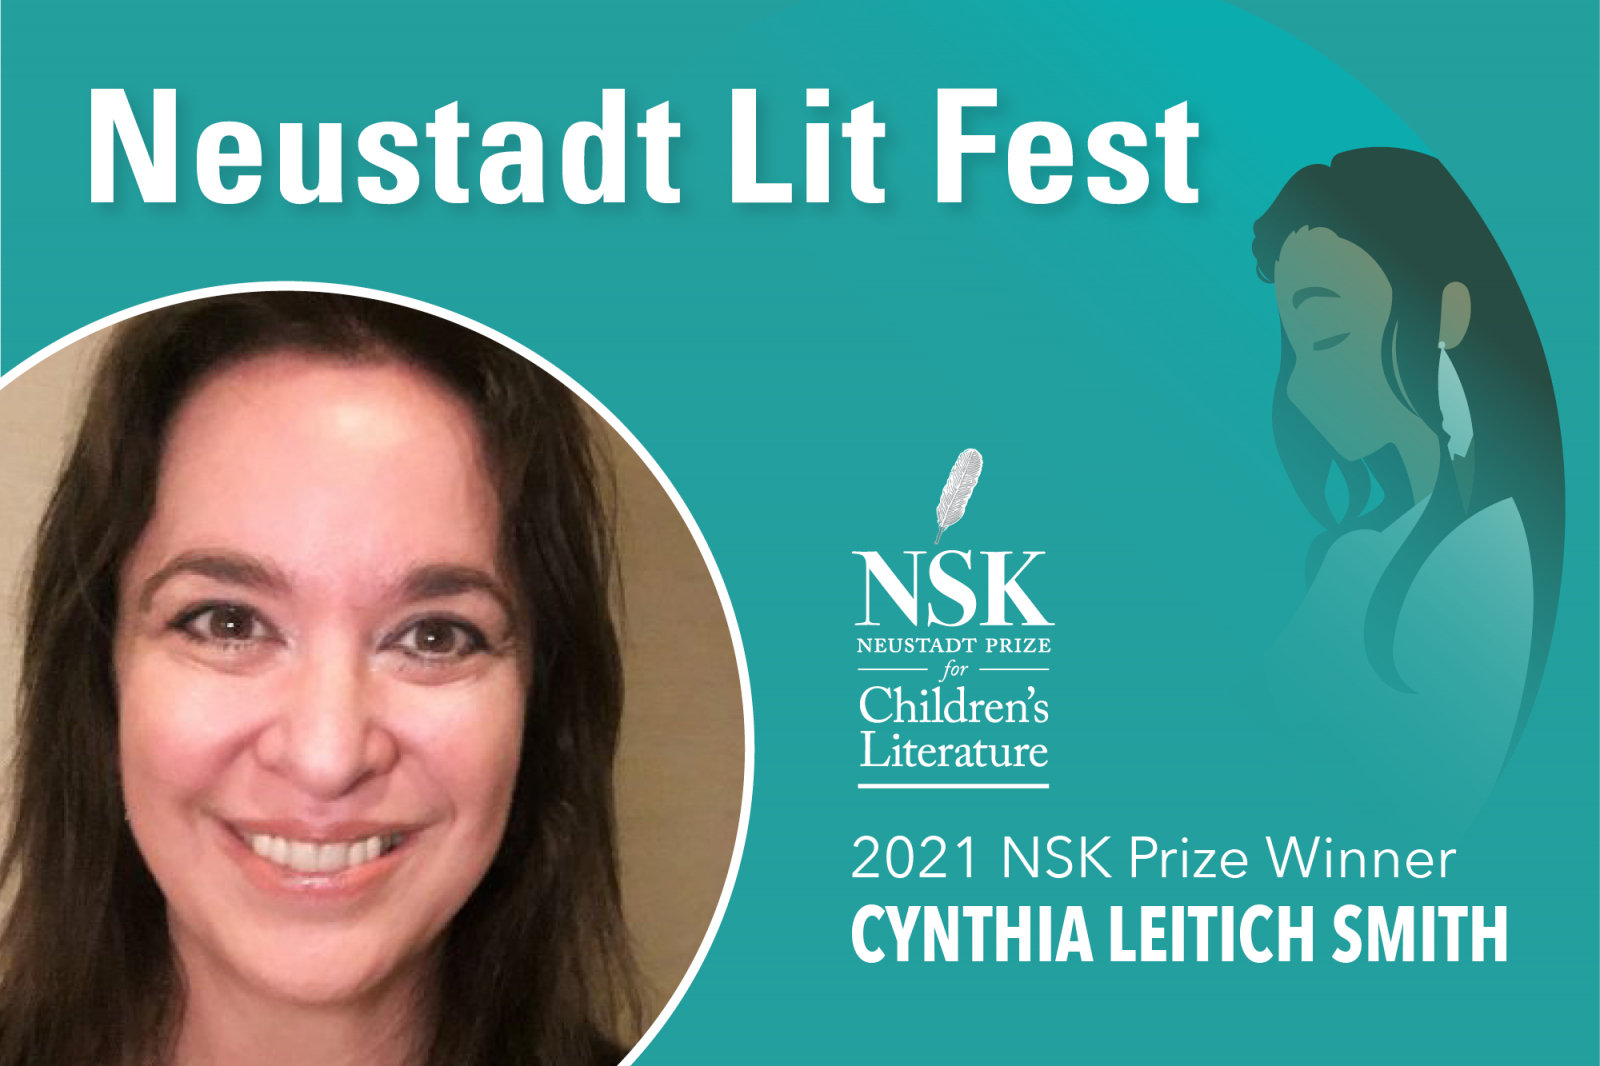 A photograph of Cynthia Leitich Smith inset with the Neustadt Lit Festival logo